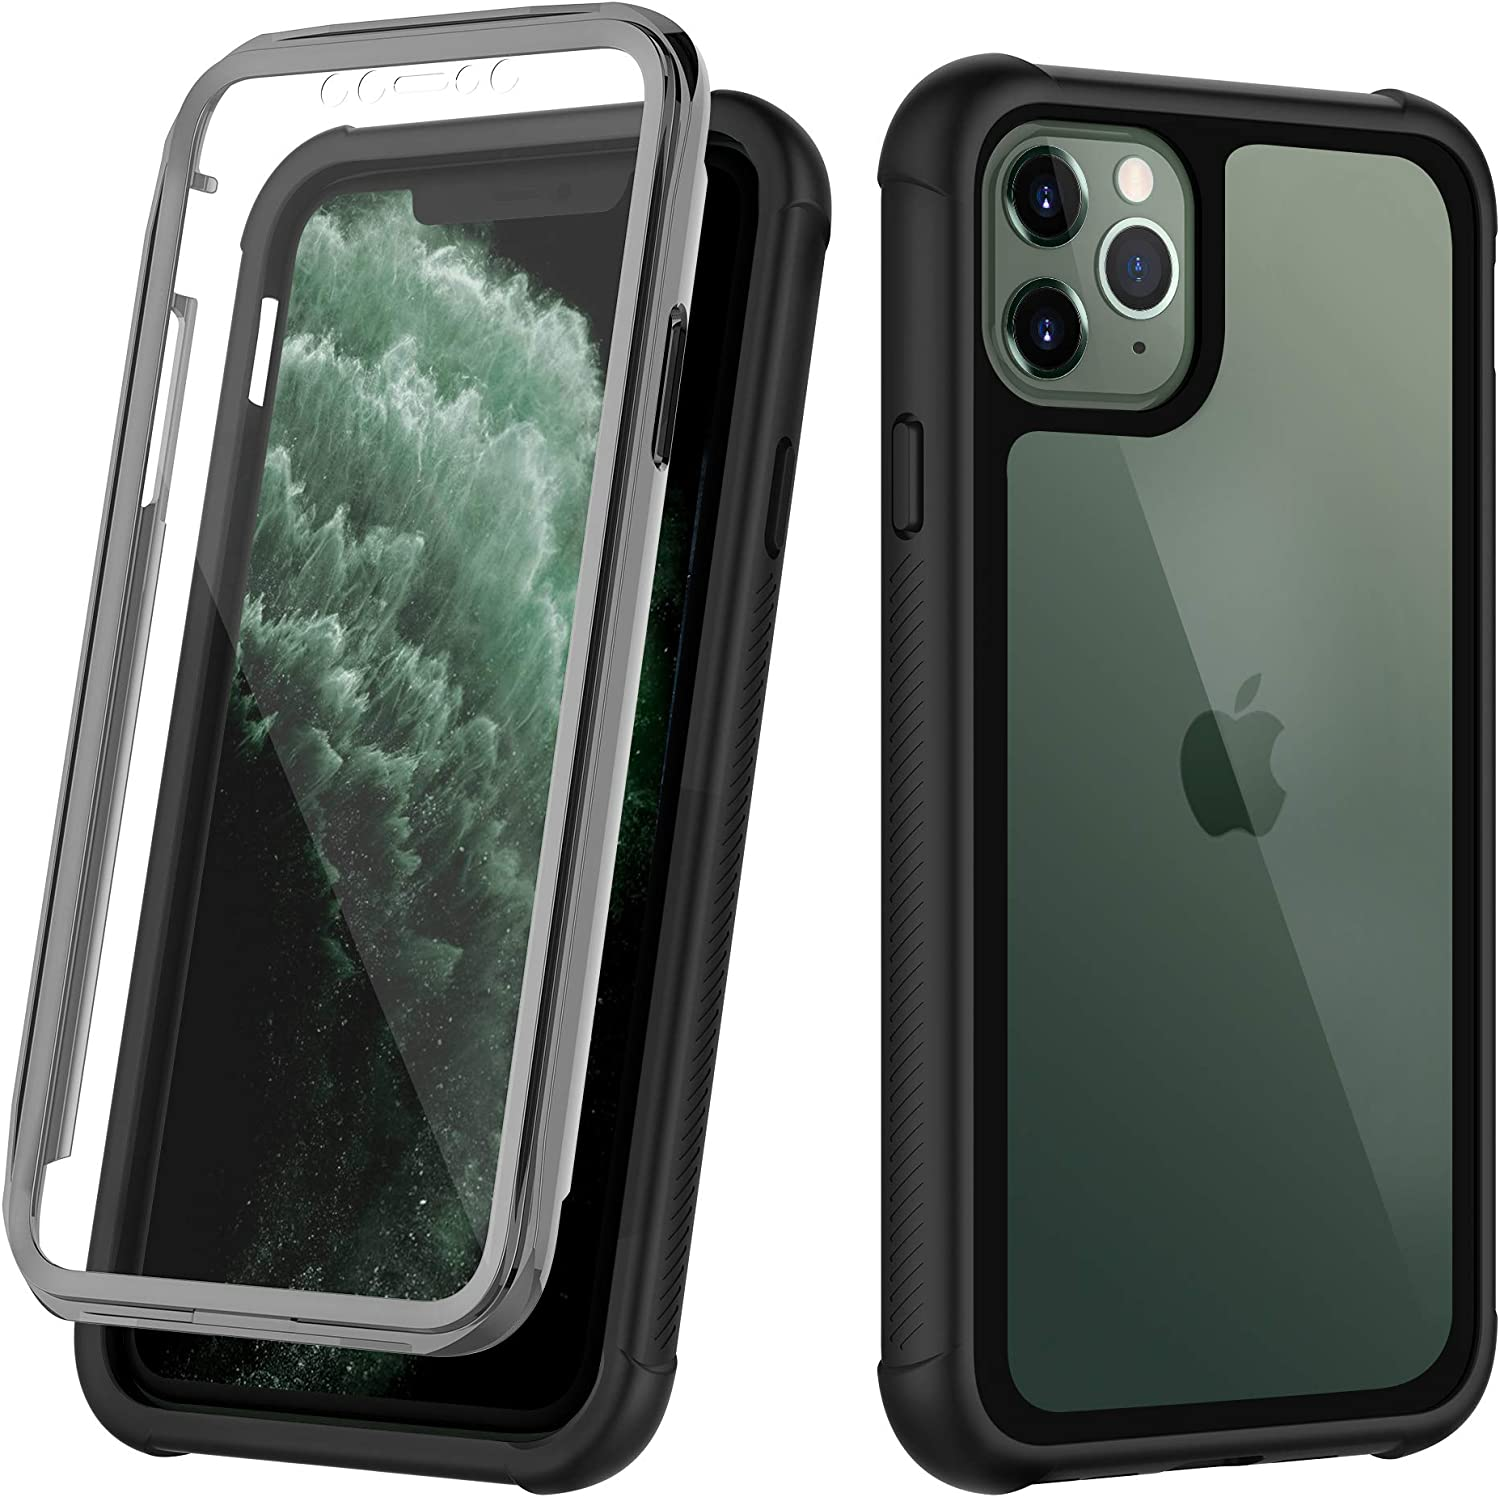 OUNNE iPhone 11 Pro Max Case,Clear Full Body Heavy Duty Protection Case with Built-in Screen Protector Anti-Scratch Shockproof Cover for iPhone 11 Pro Max Cases (2019) 6.5 Inch